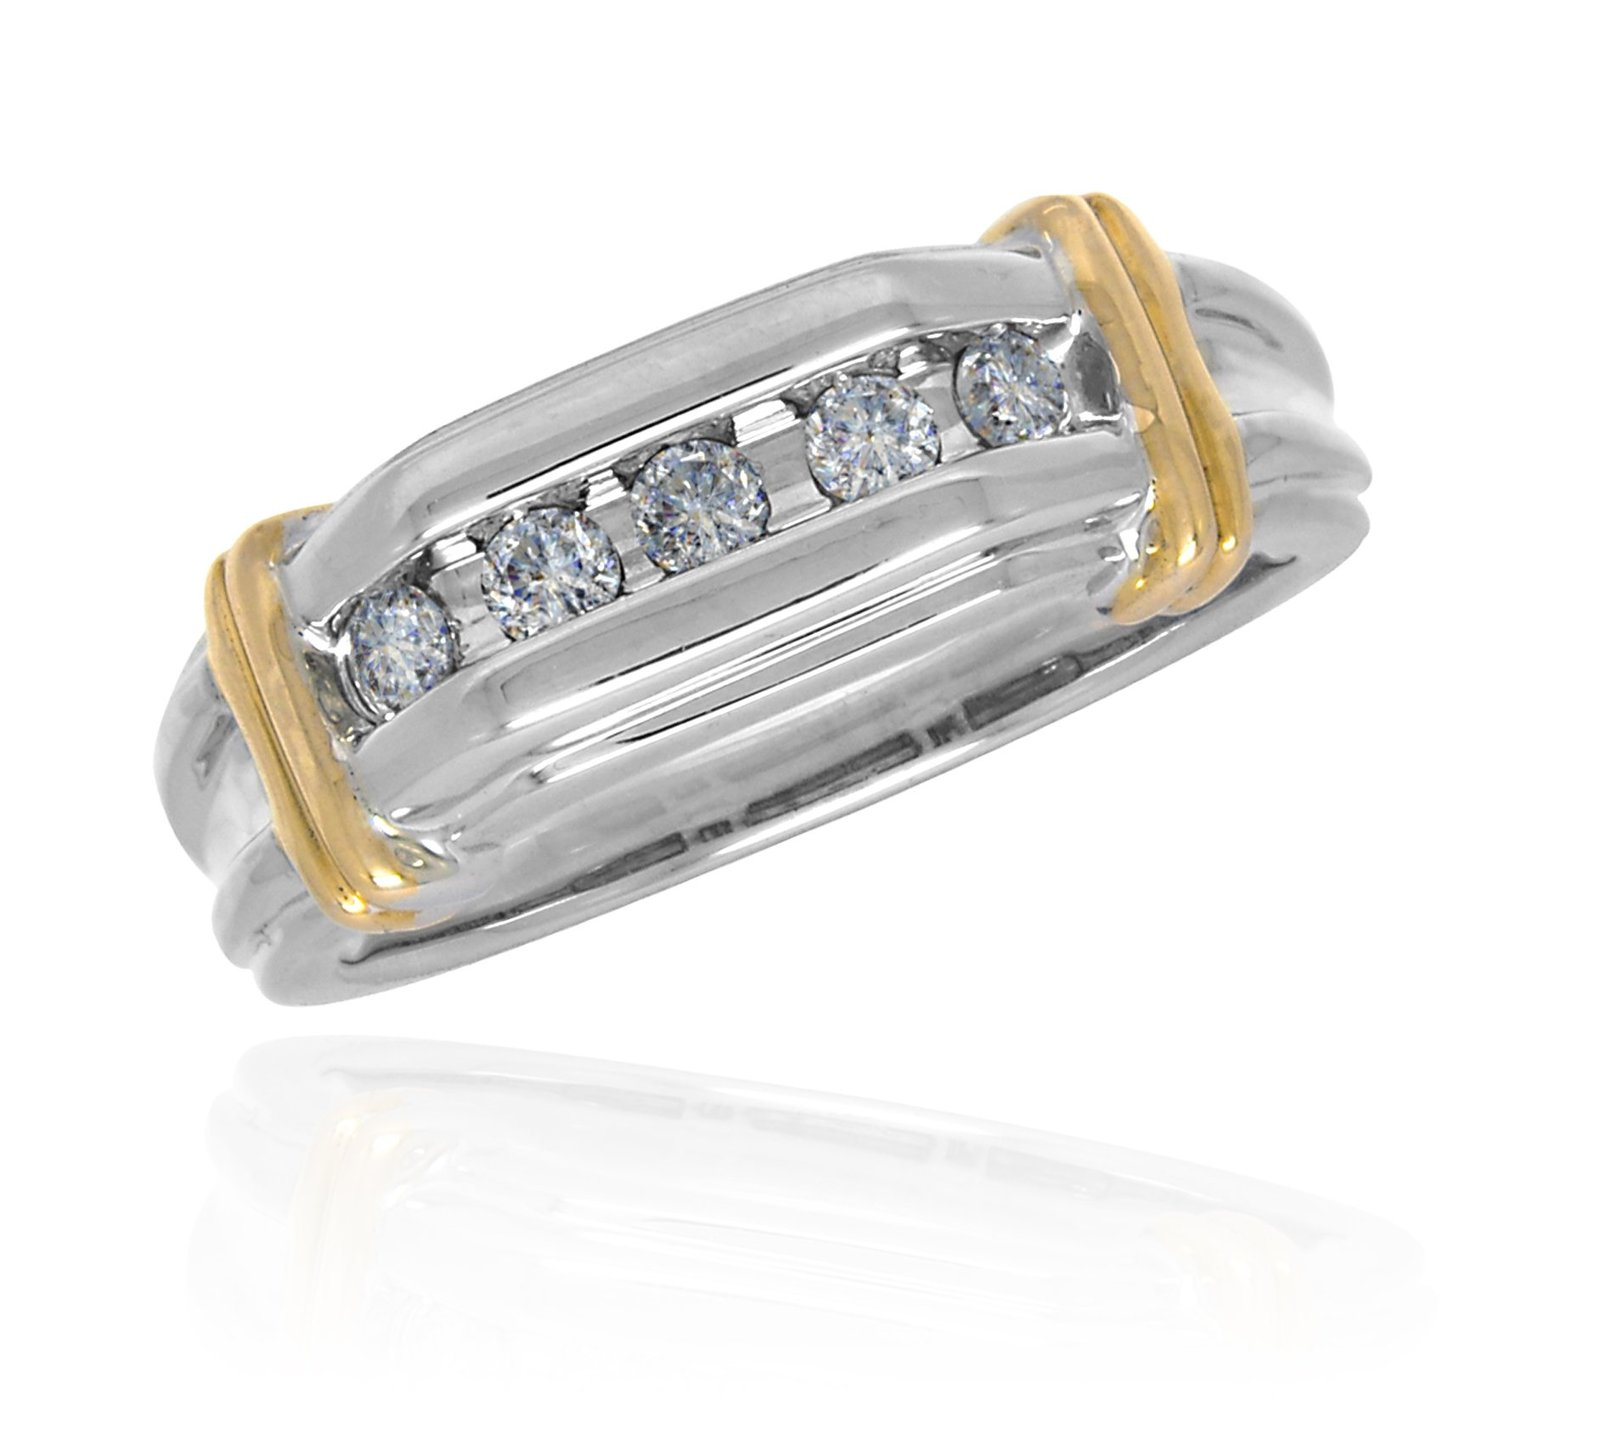 14 K White and Yellow Gold 0.40 Cttw Round Diamond Mens Ring